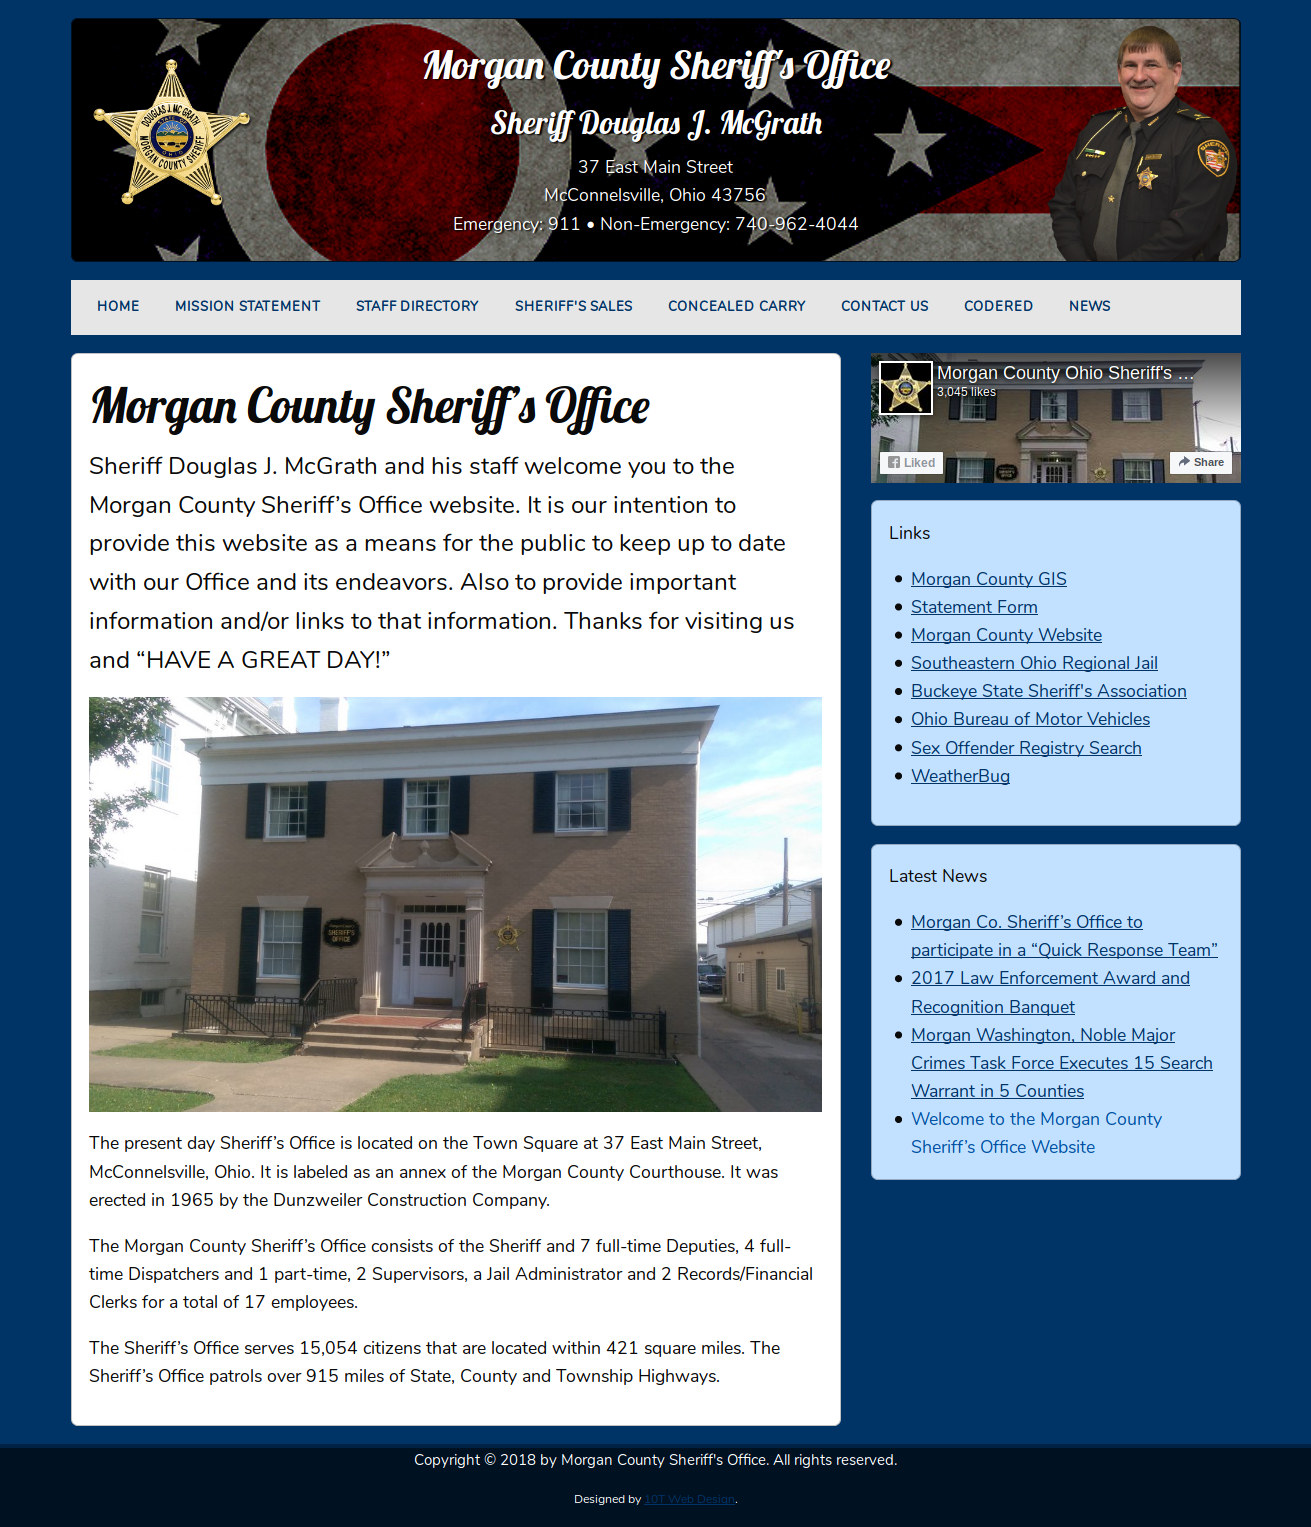 Morgan County Sheriff Office